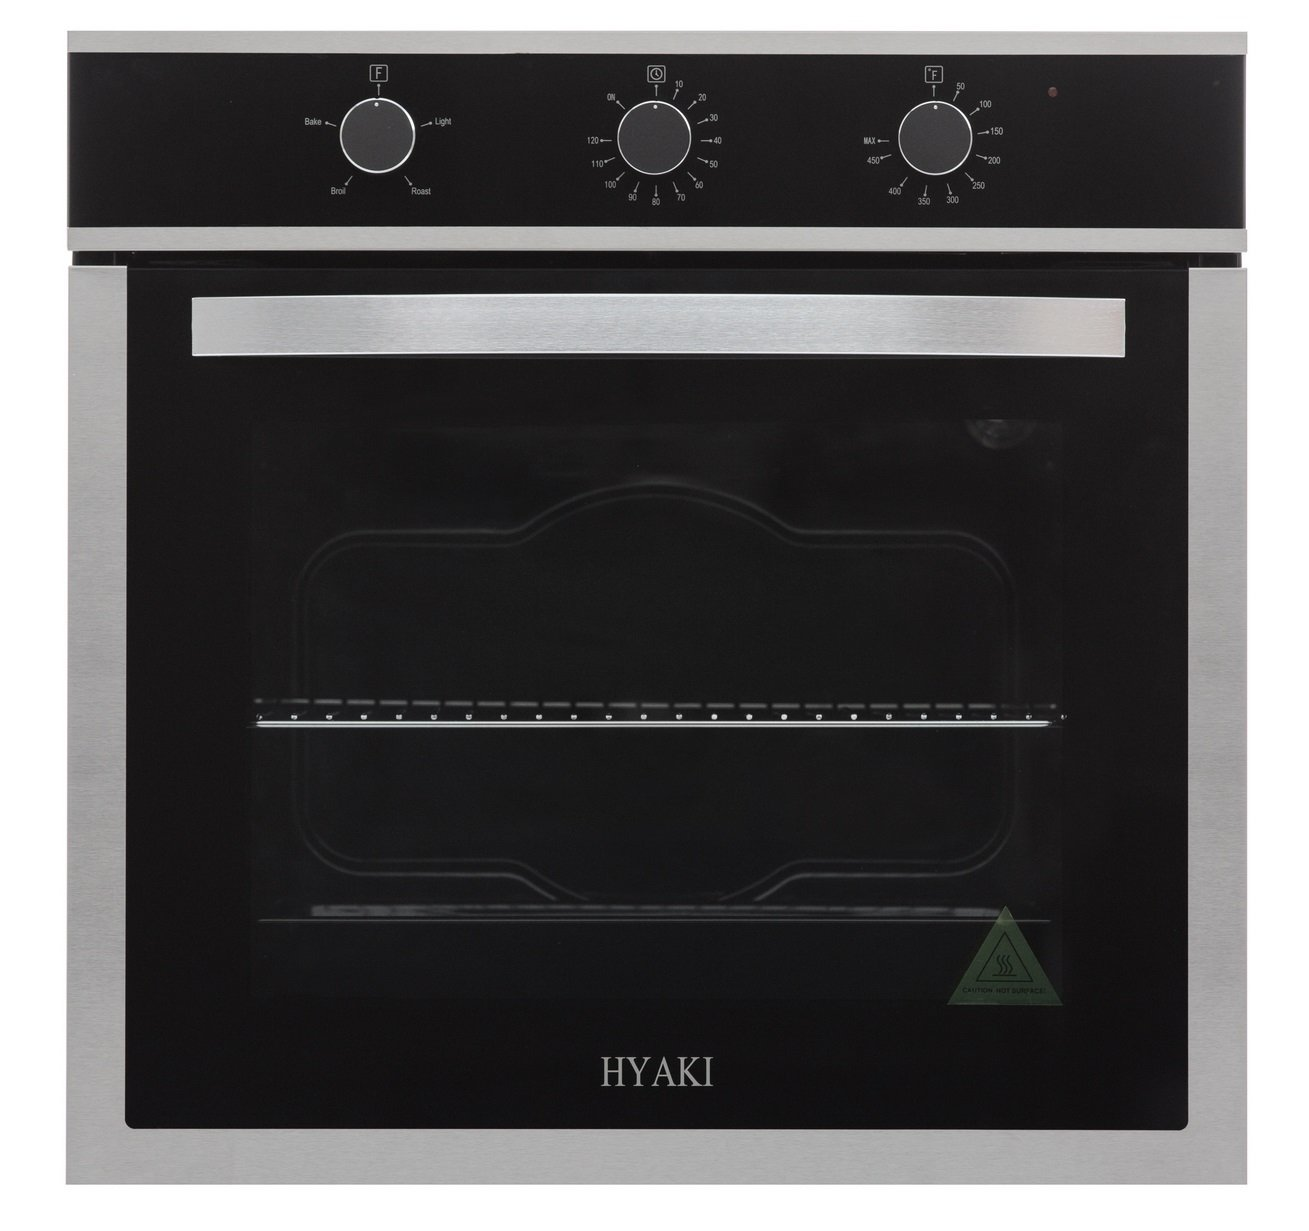 "Hyaki 24"" Modern Style Stainless Steel Built in Electric Wall Oven 220V HYK-24WOX03"